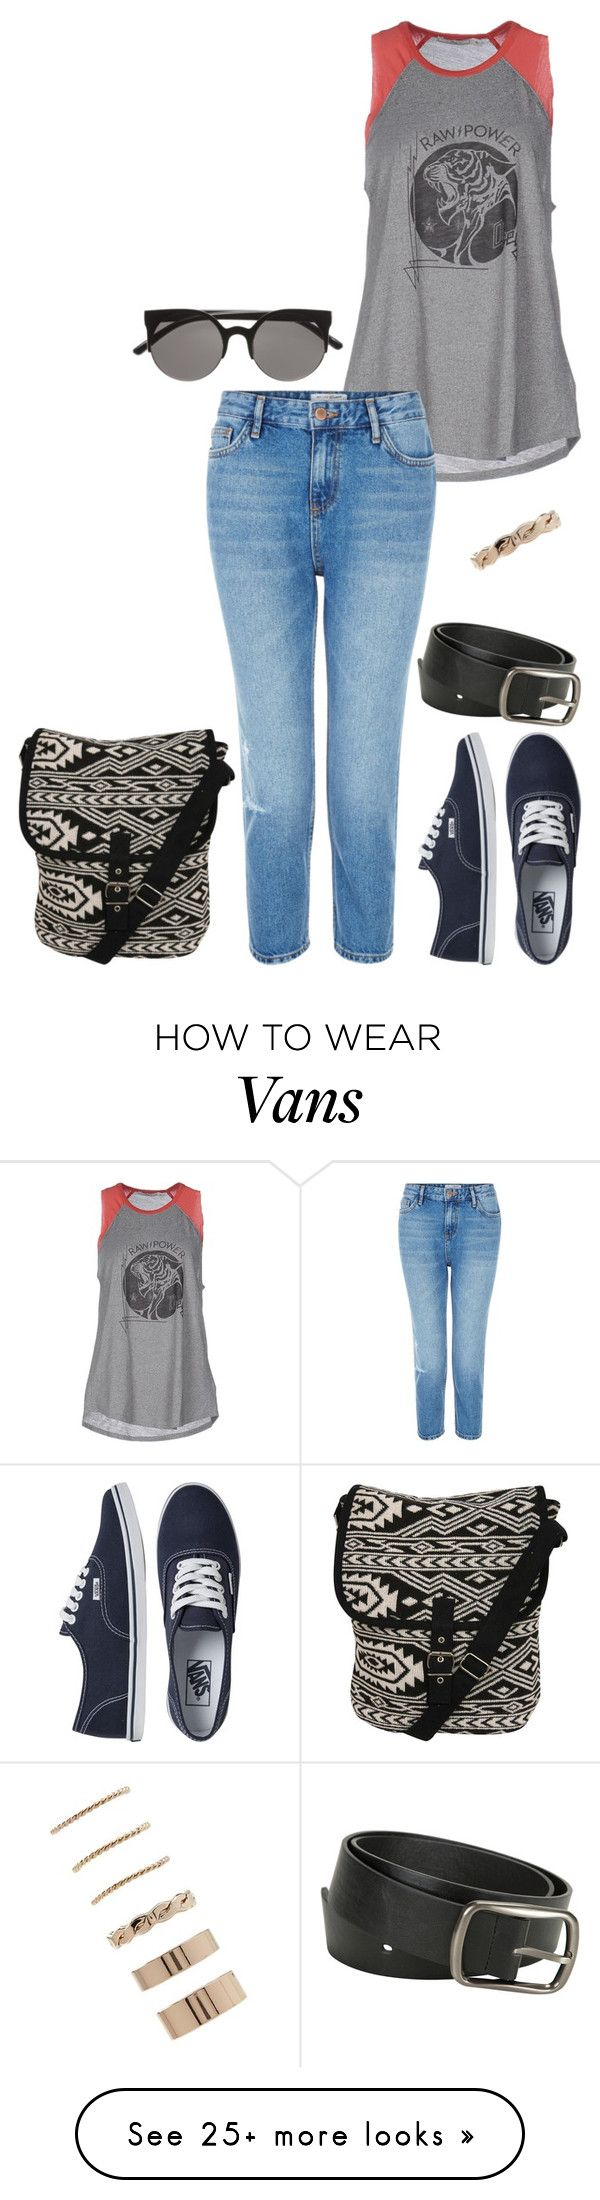 """01/06/19"" by sarahulliel on Polyvore featuring OBEY Clothing, New Look, Vans, Pilot, H&M and Forever 21"